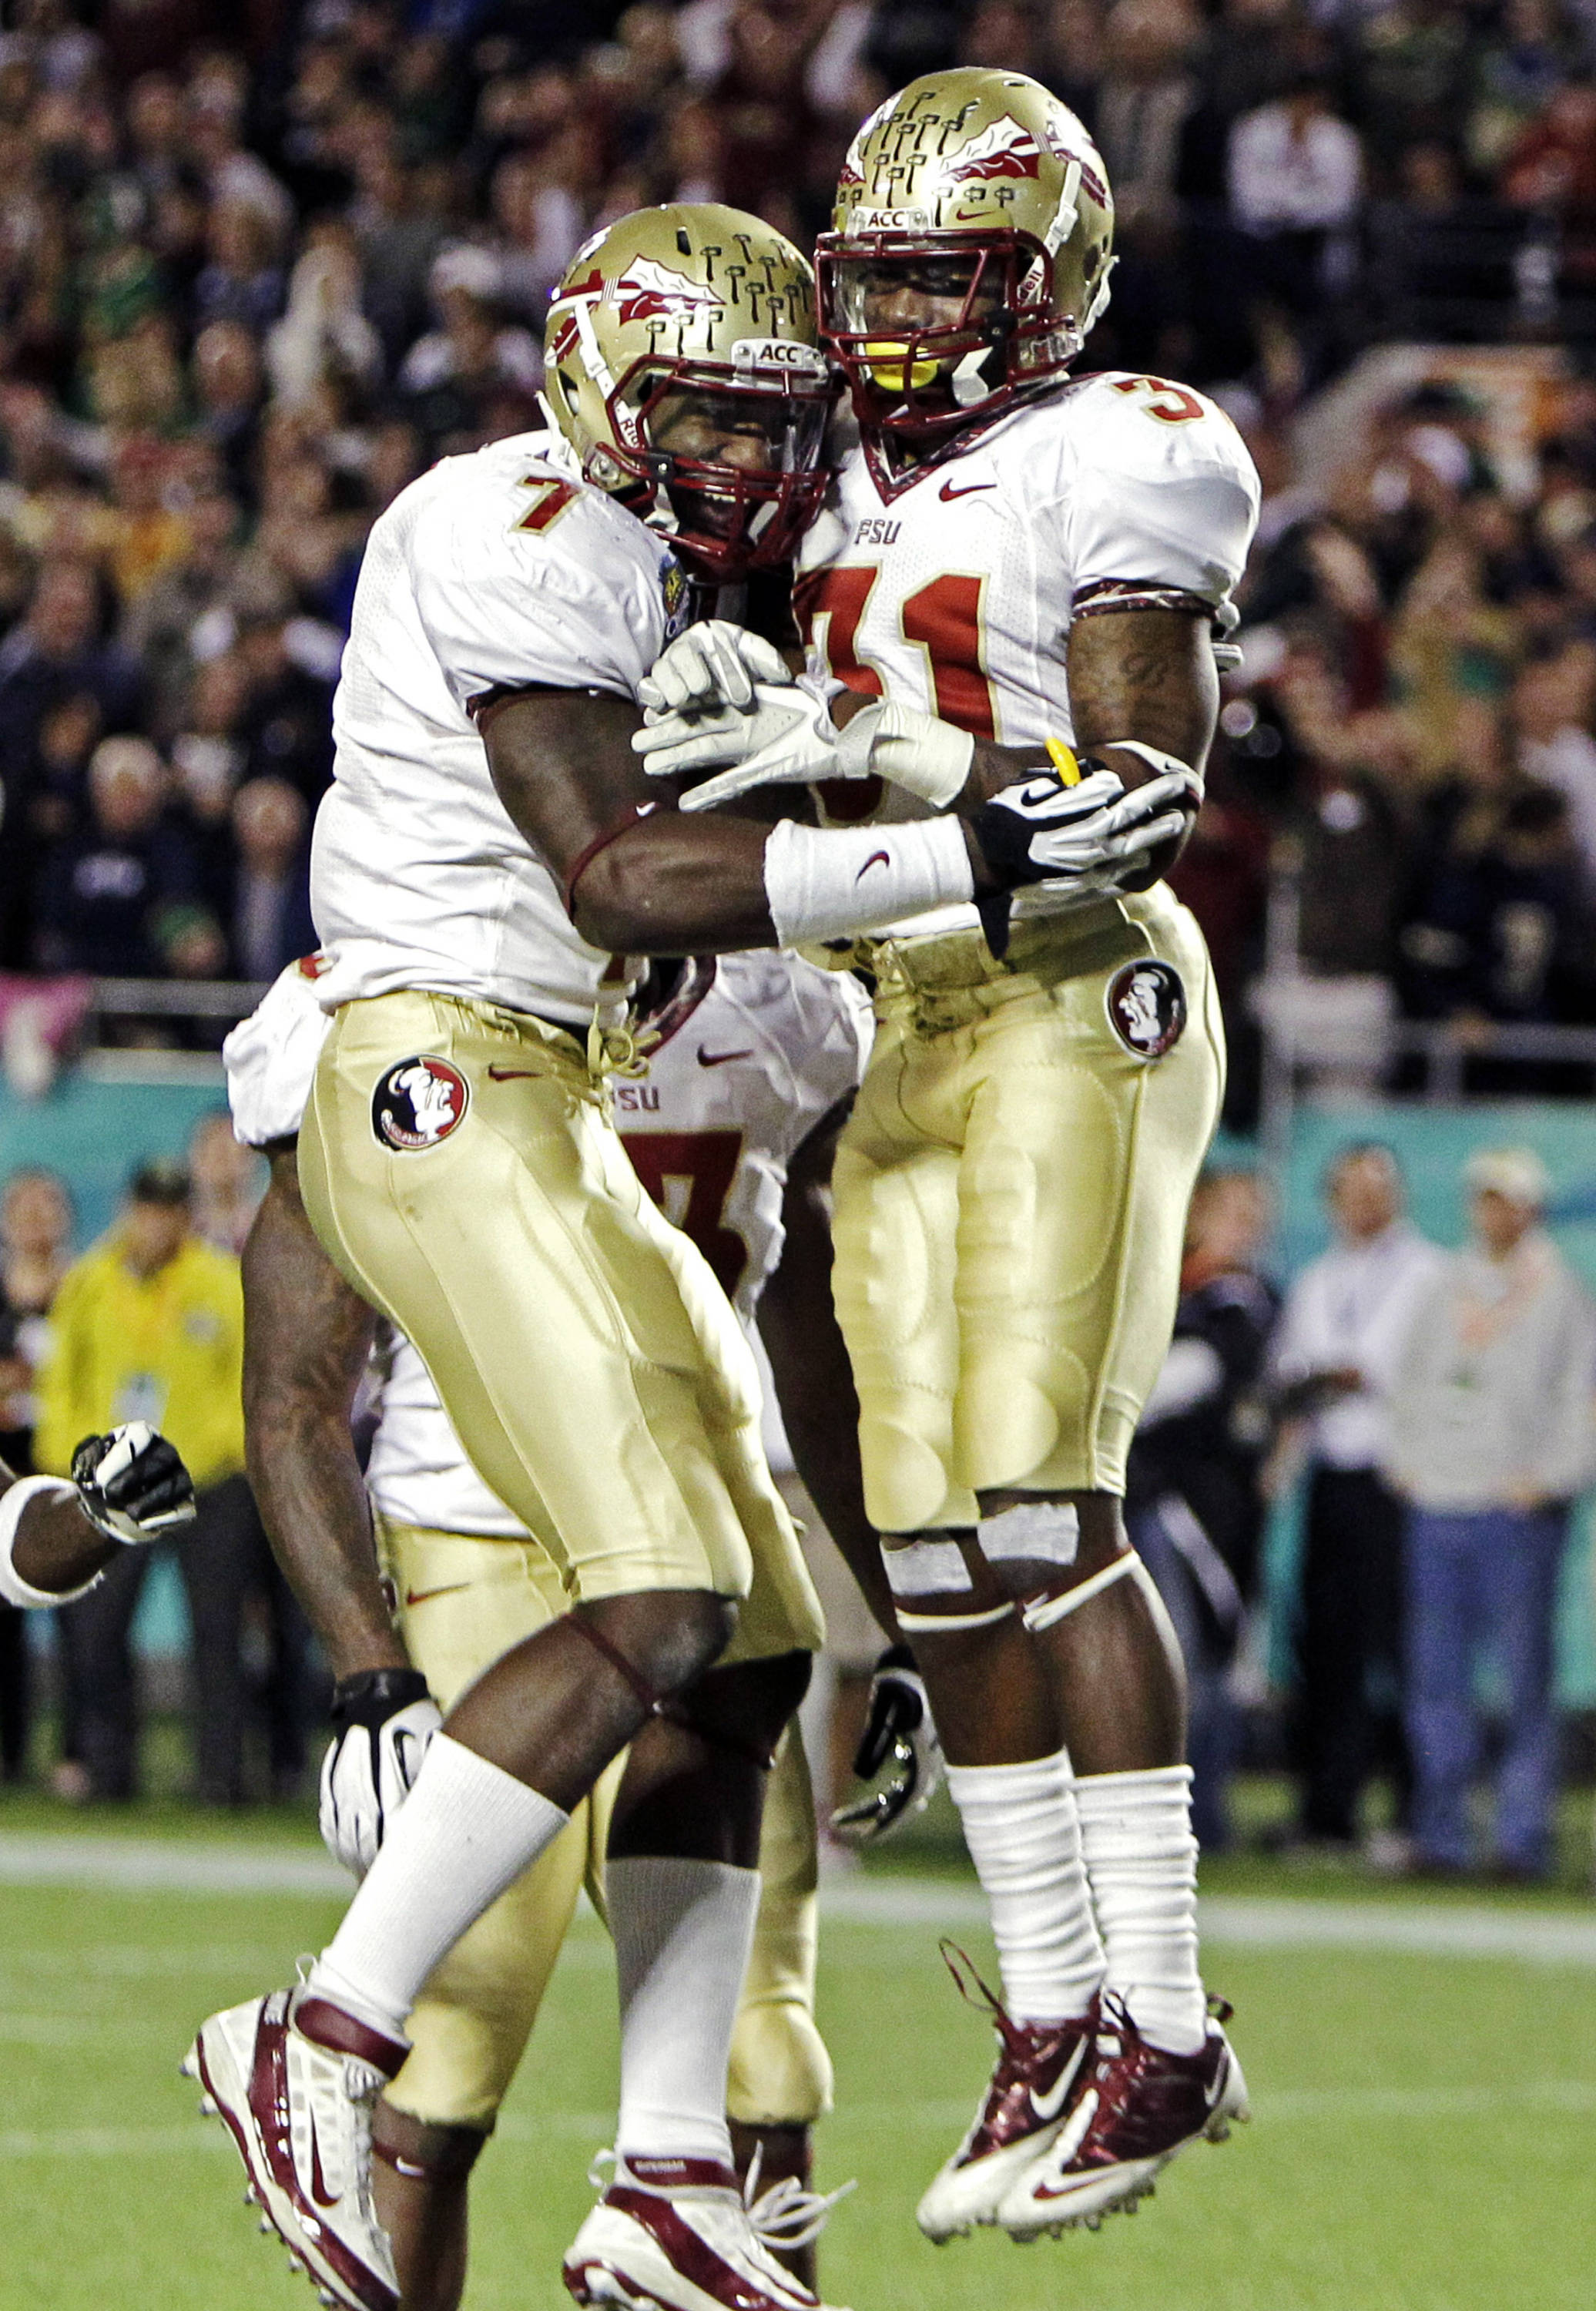 Florida State defensive back Terrence Brooks (31) celebrates with linebacker Christian Jones (7) after intercepting a pass in the end zone to stop a Notre Dame drive during the final minutes of the Champs Sports Bowl. (AP Photo/John Raoux)